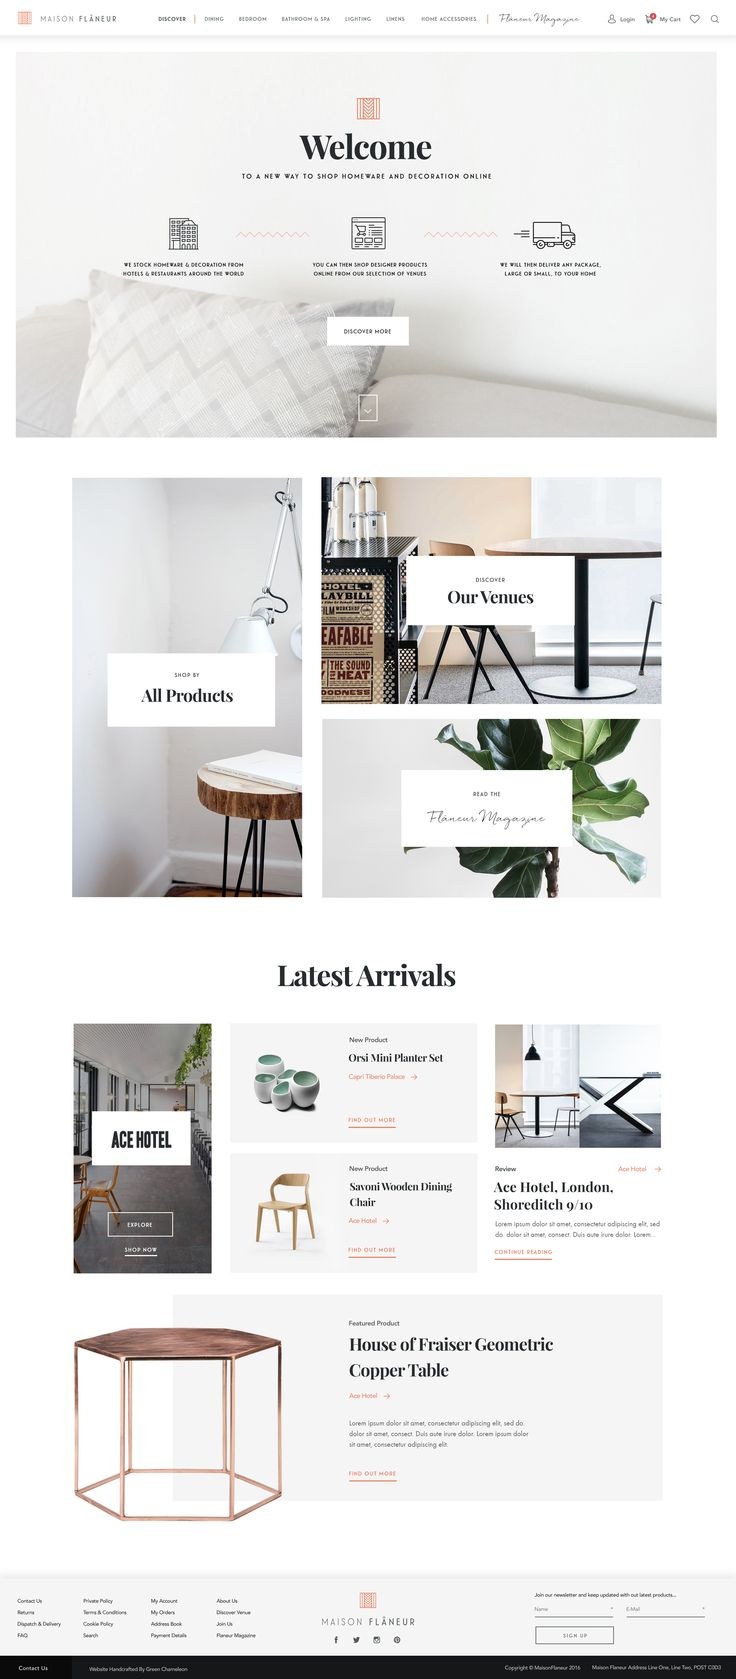 Icon Shot X Light Maison Flâneur Homepage